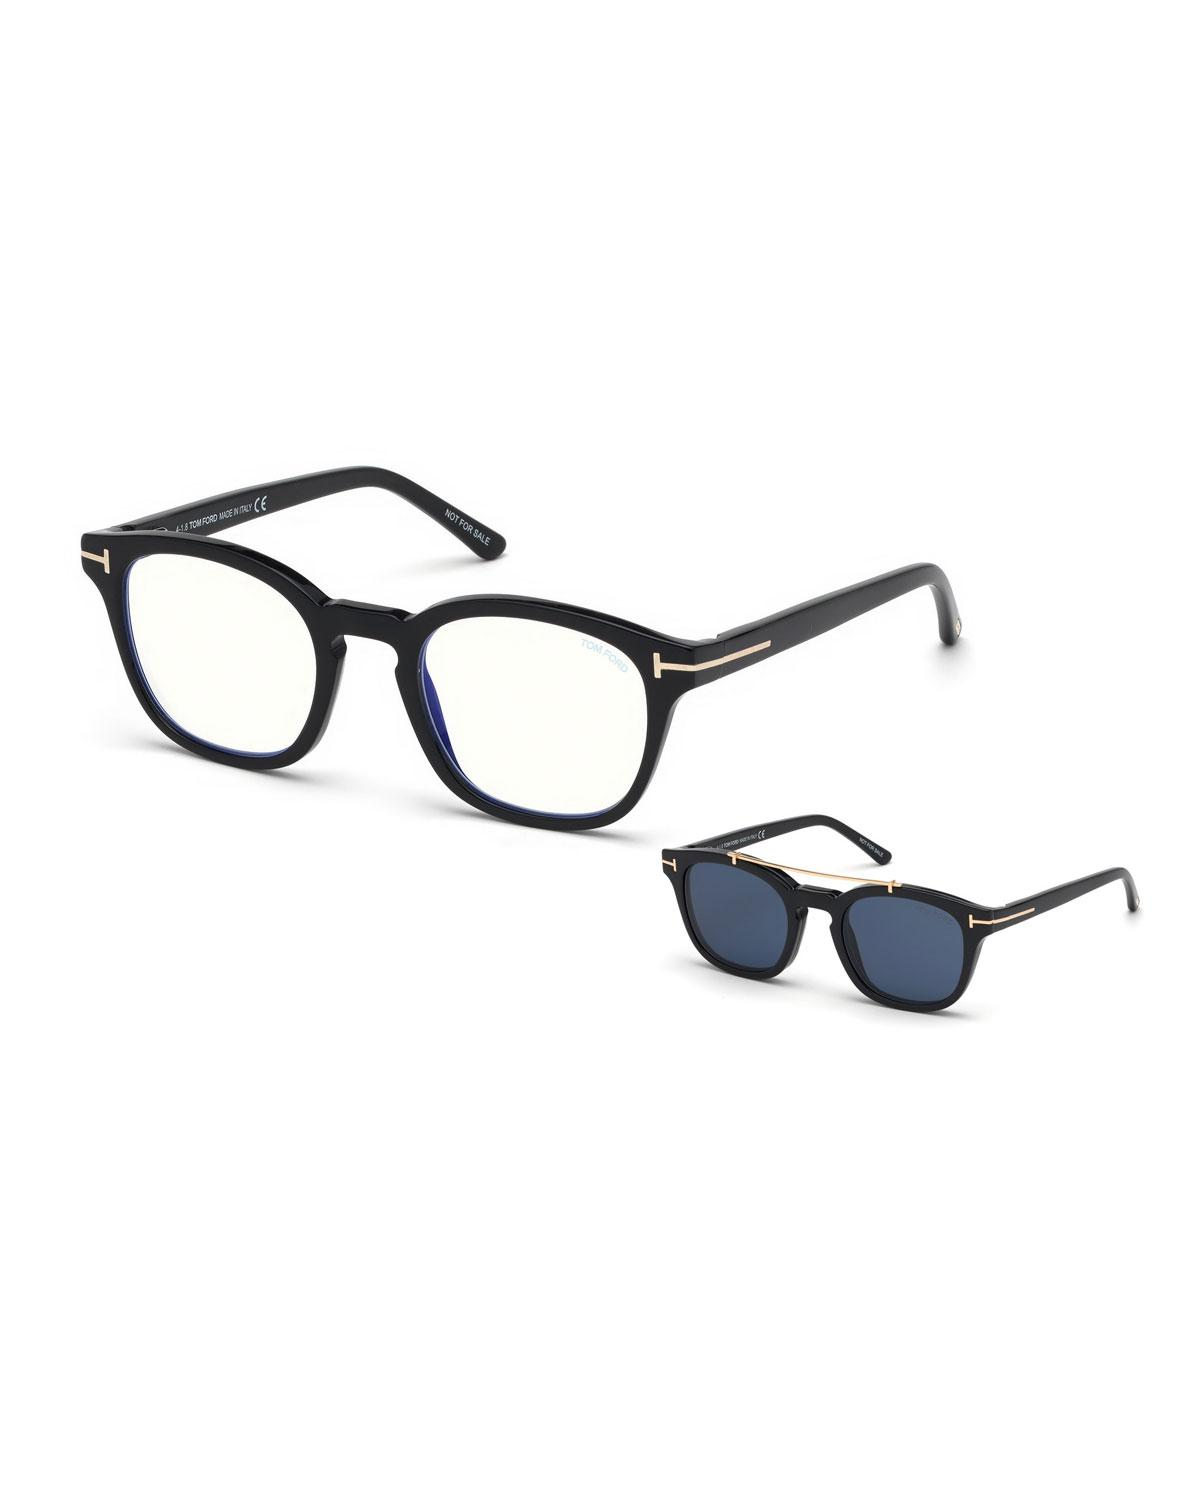 69c778f10d Tom Ford. Women s Men s Square Optical Glasses W  Clip On Blue Block Lenses